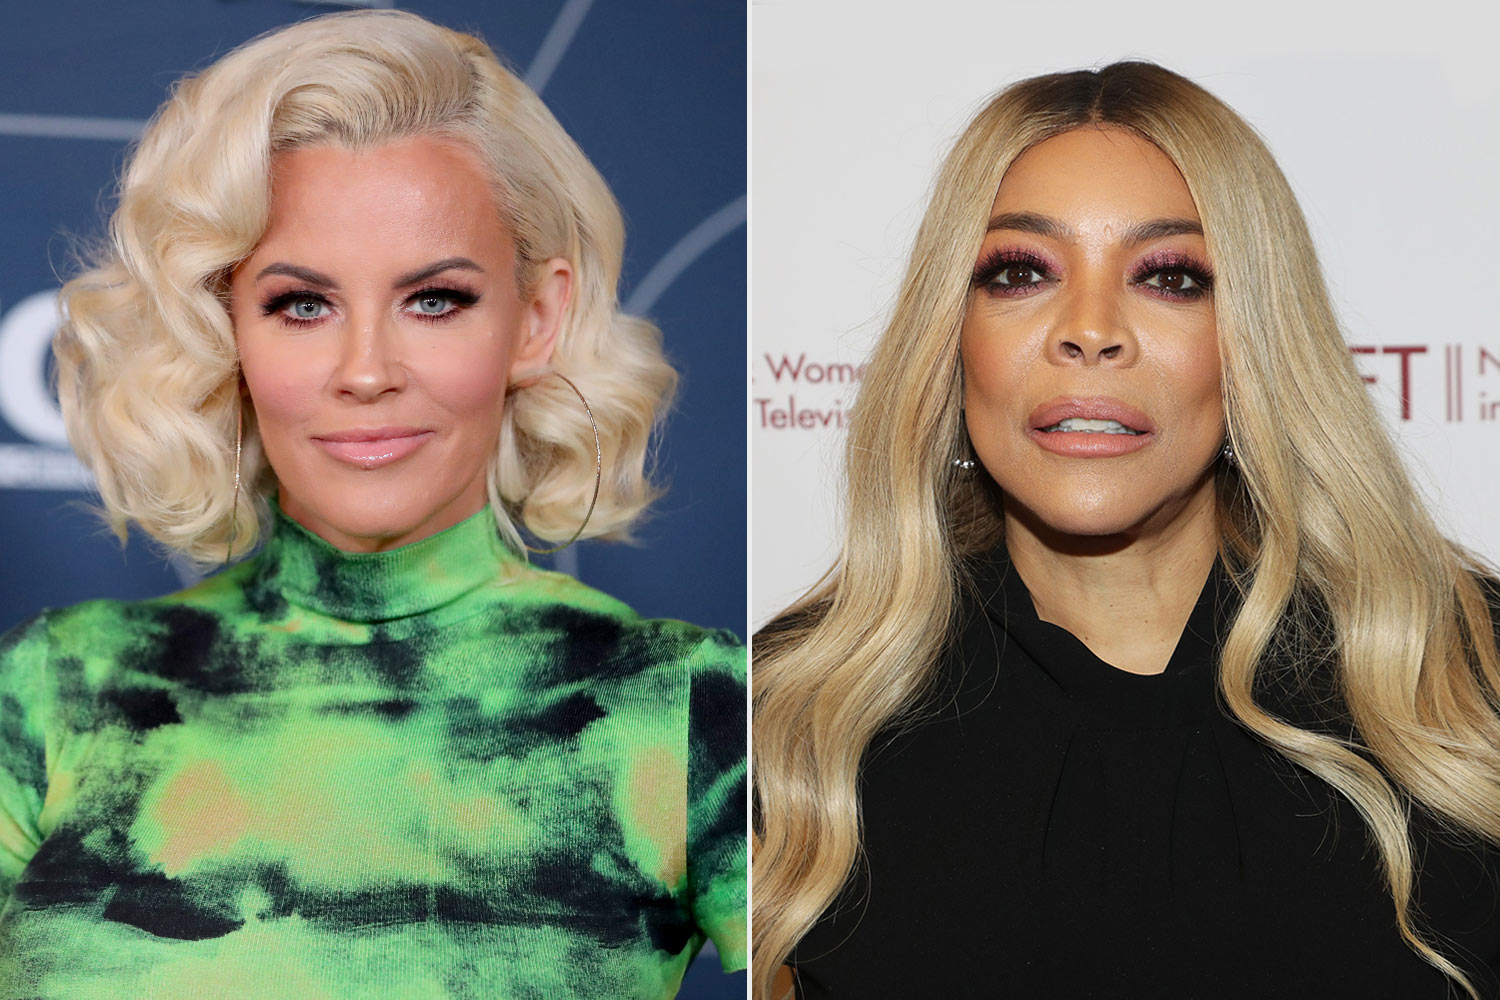 Jenny mccarthy and wendy Williams